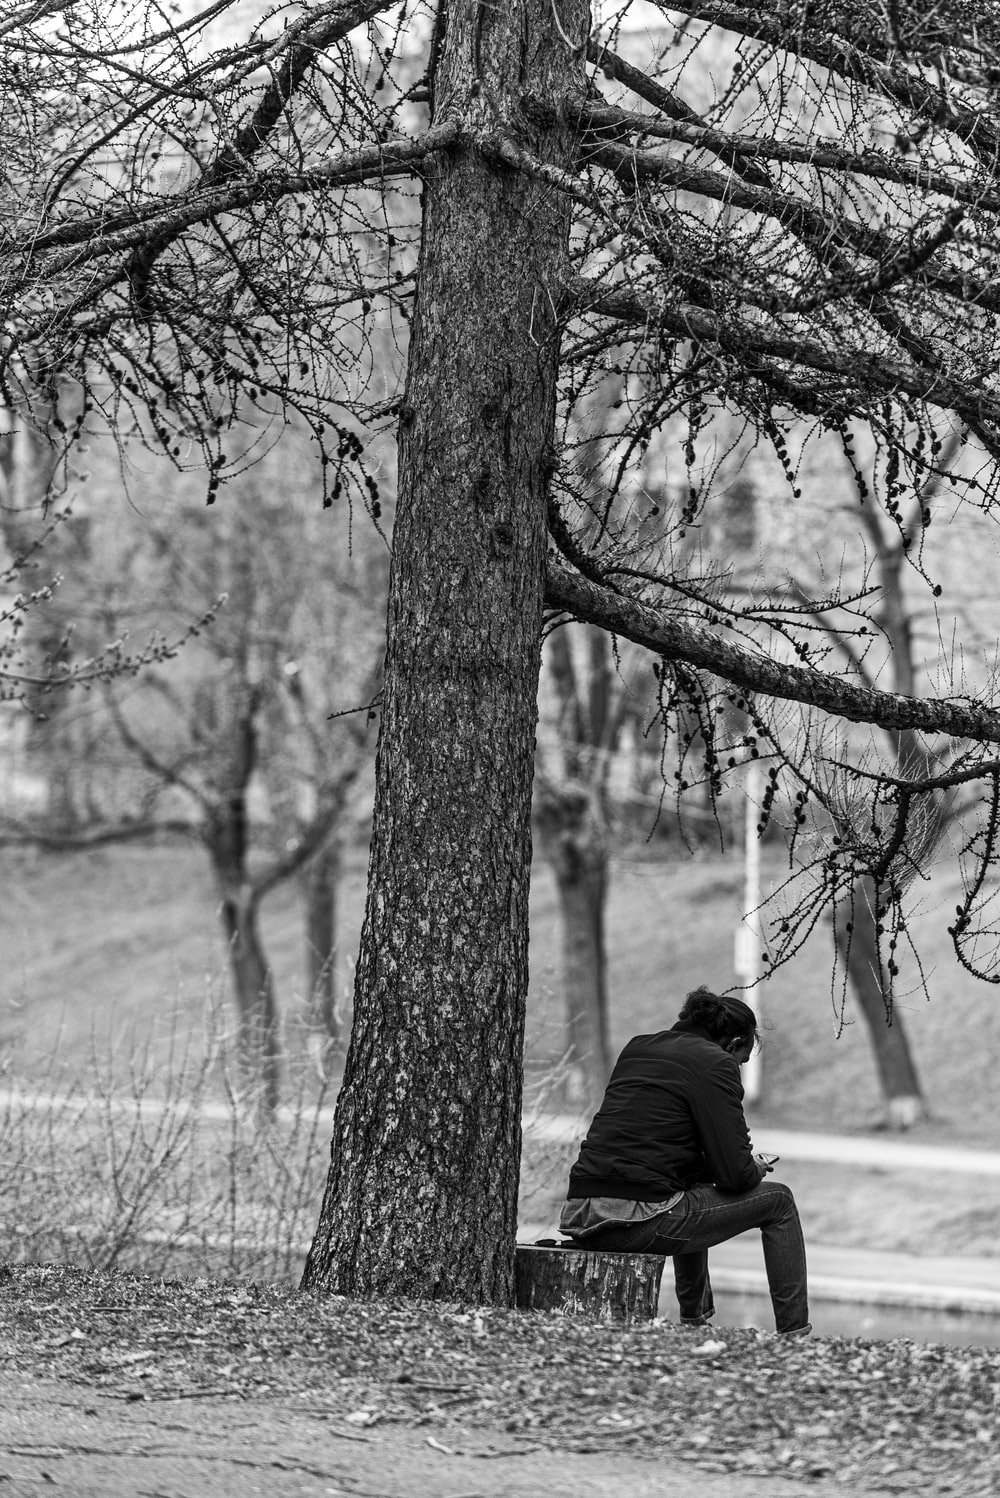 man in black jacket sitting on bench near bare trees during daytime